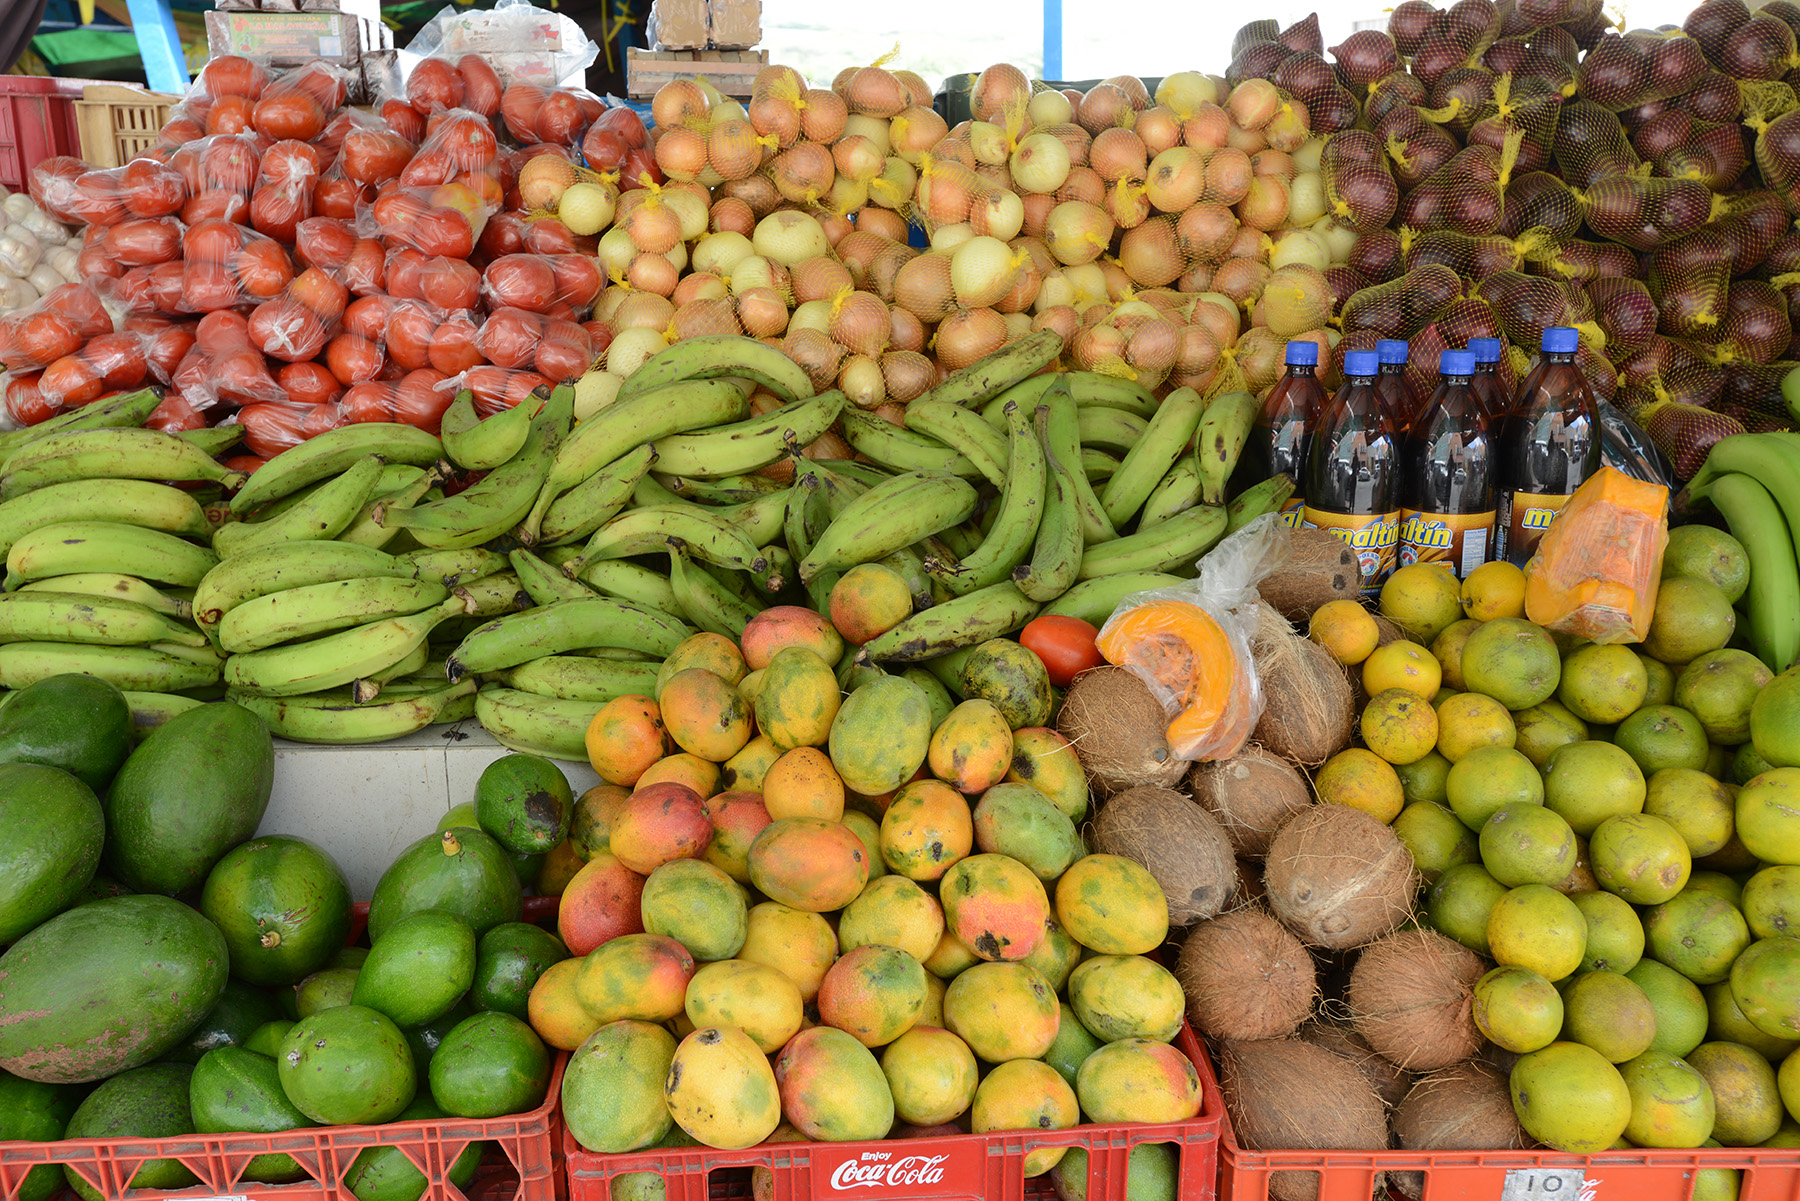 Fruit table at local market.